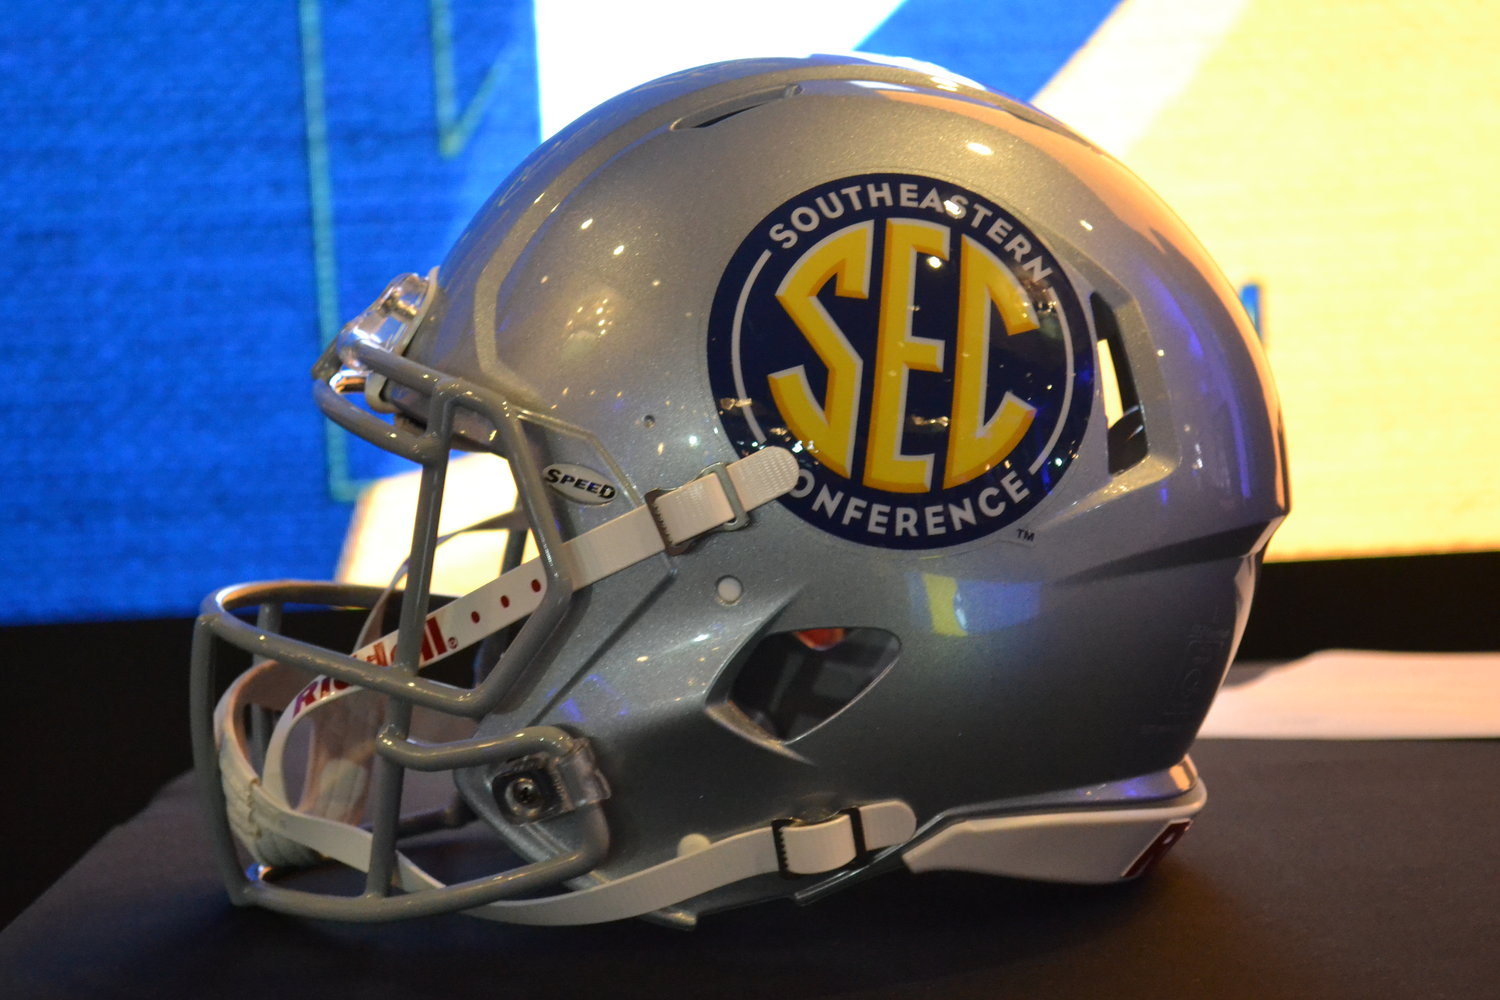 SEC Media Days took place this week from the Hyatt Regency - Winfrey Hotel in Hoover, Alabama. All fourteen head coaches, as well as SEC Commissioner Greg Sankey and Coordinator of Officials Steve Shaw,  spoke to media from around the country about the upcoming college football season.